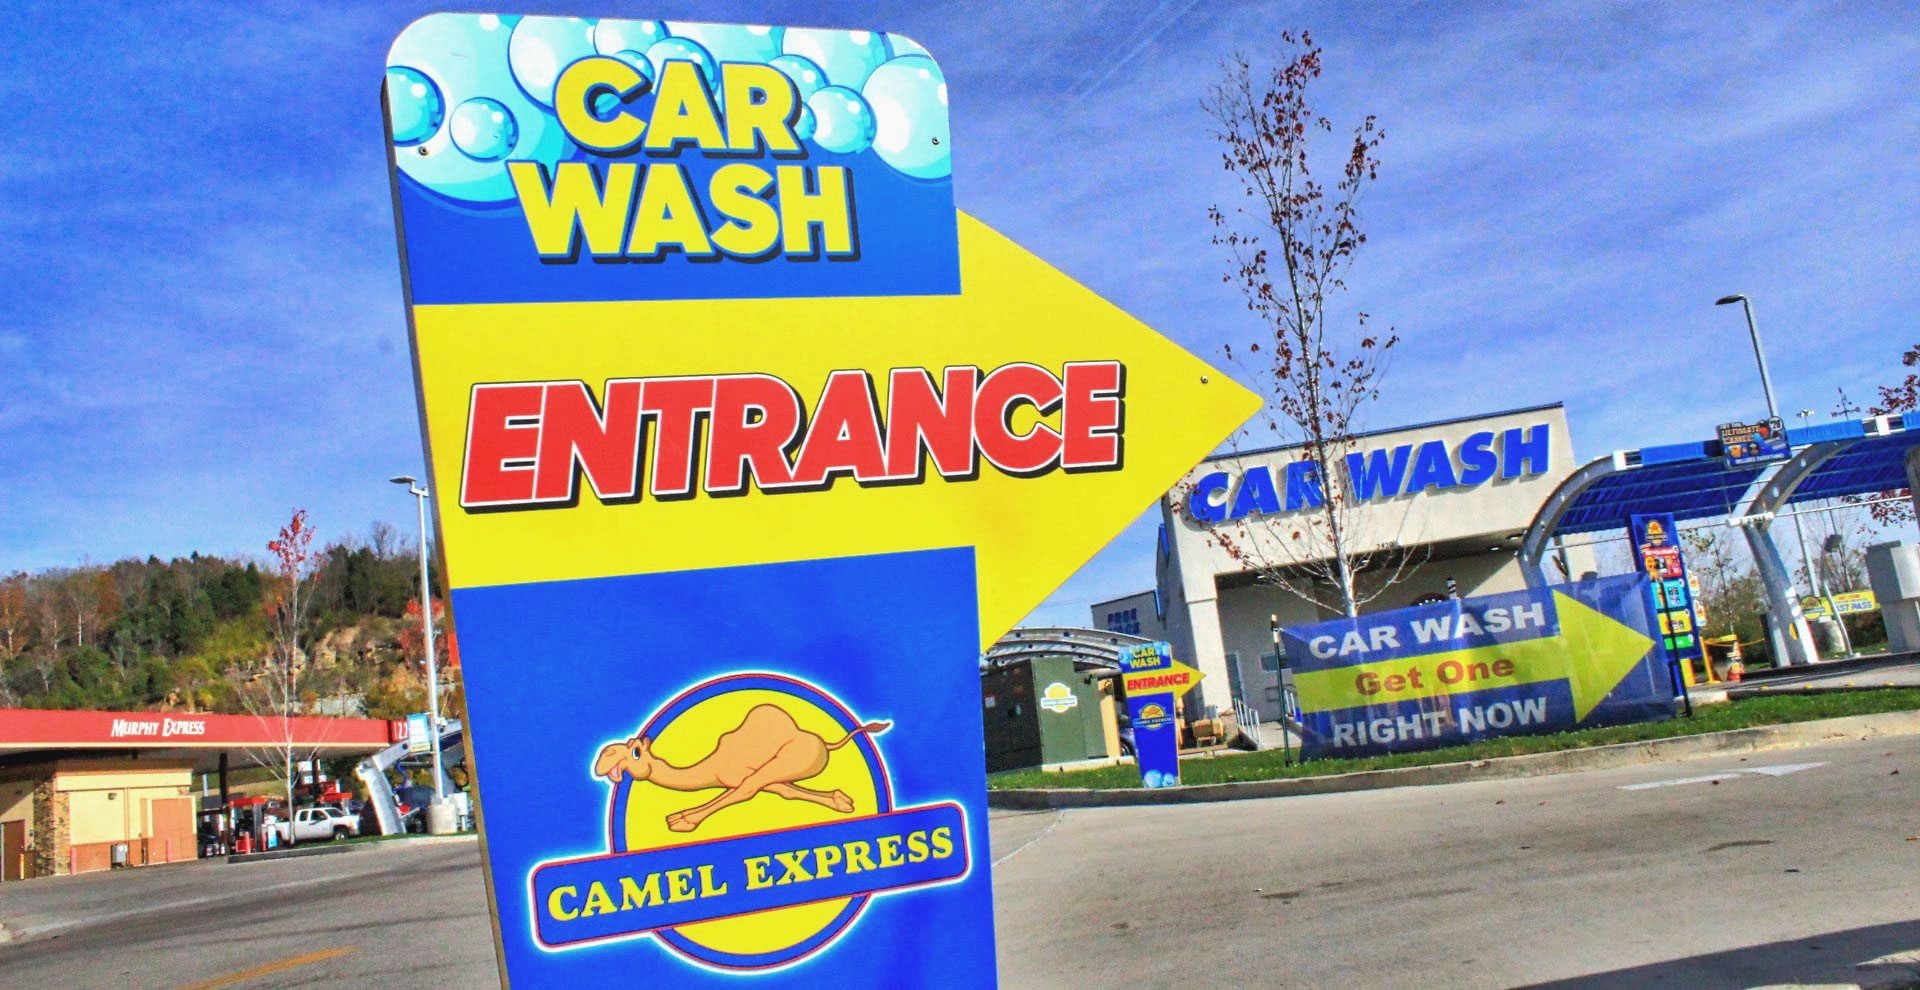 Camel Express Car Wash, Nashville TN